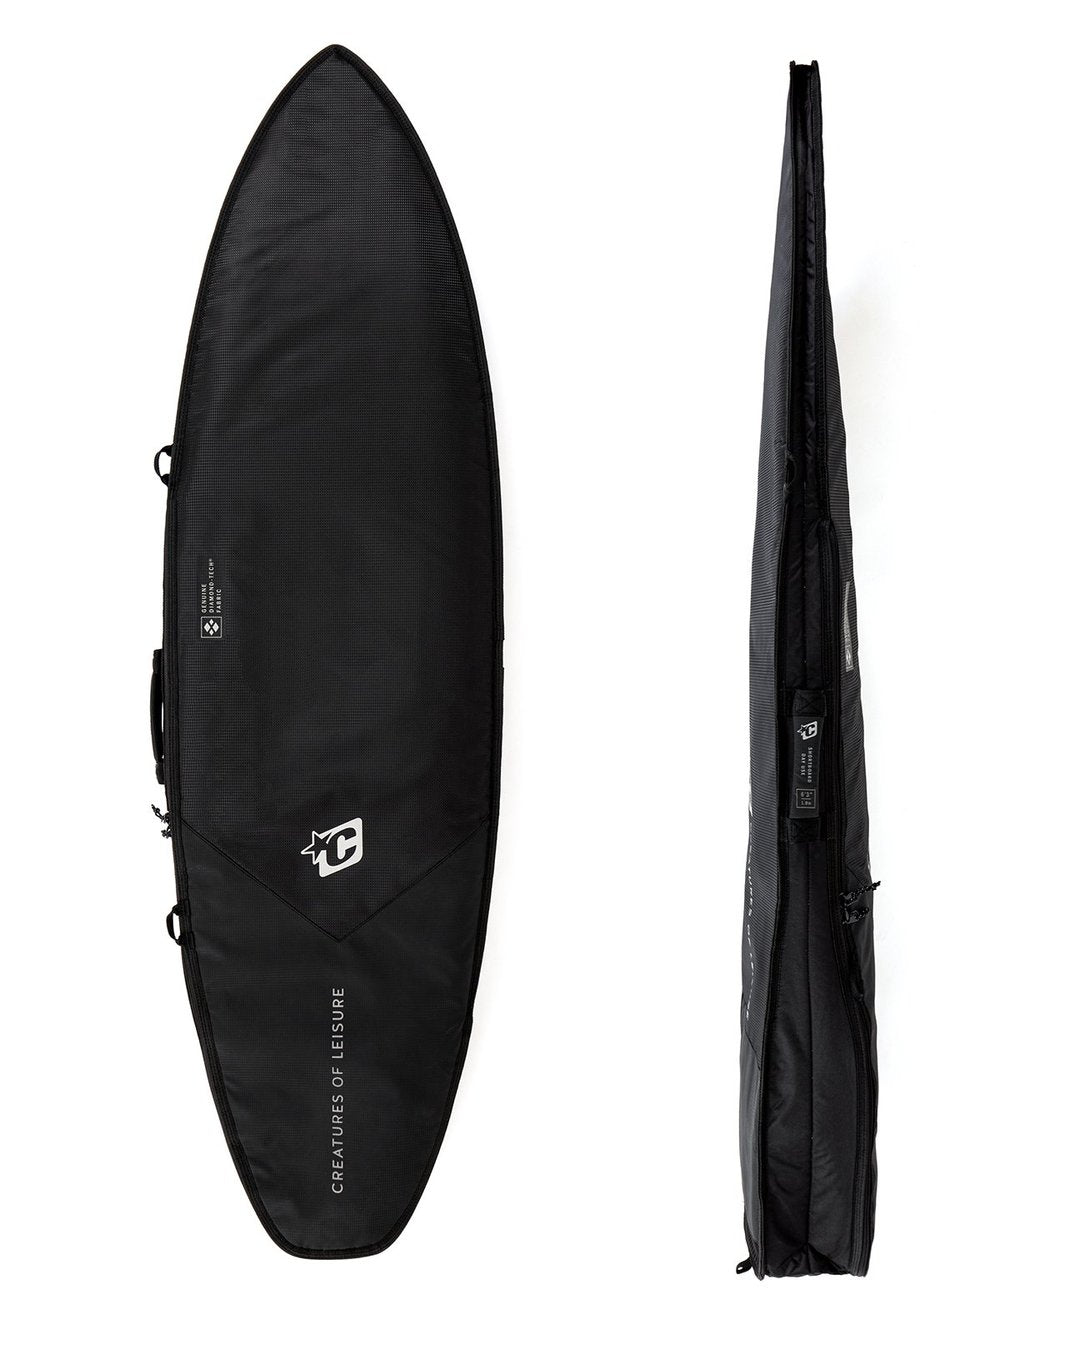 "Creatures SHORTBOARD DAY USE DT2.0 7'6"" : BLACK SILVER - Board Store CreaturesBoardcover"